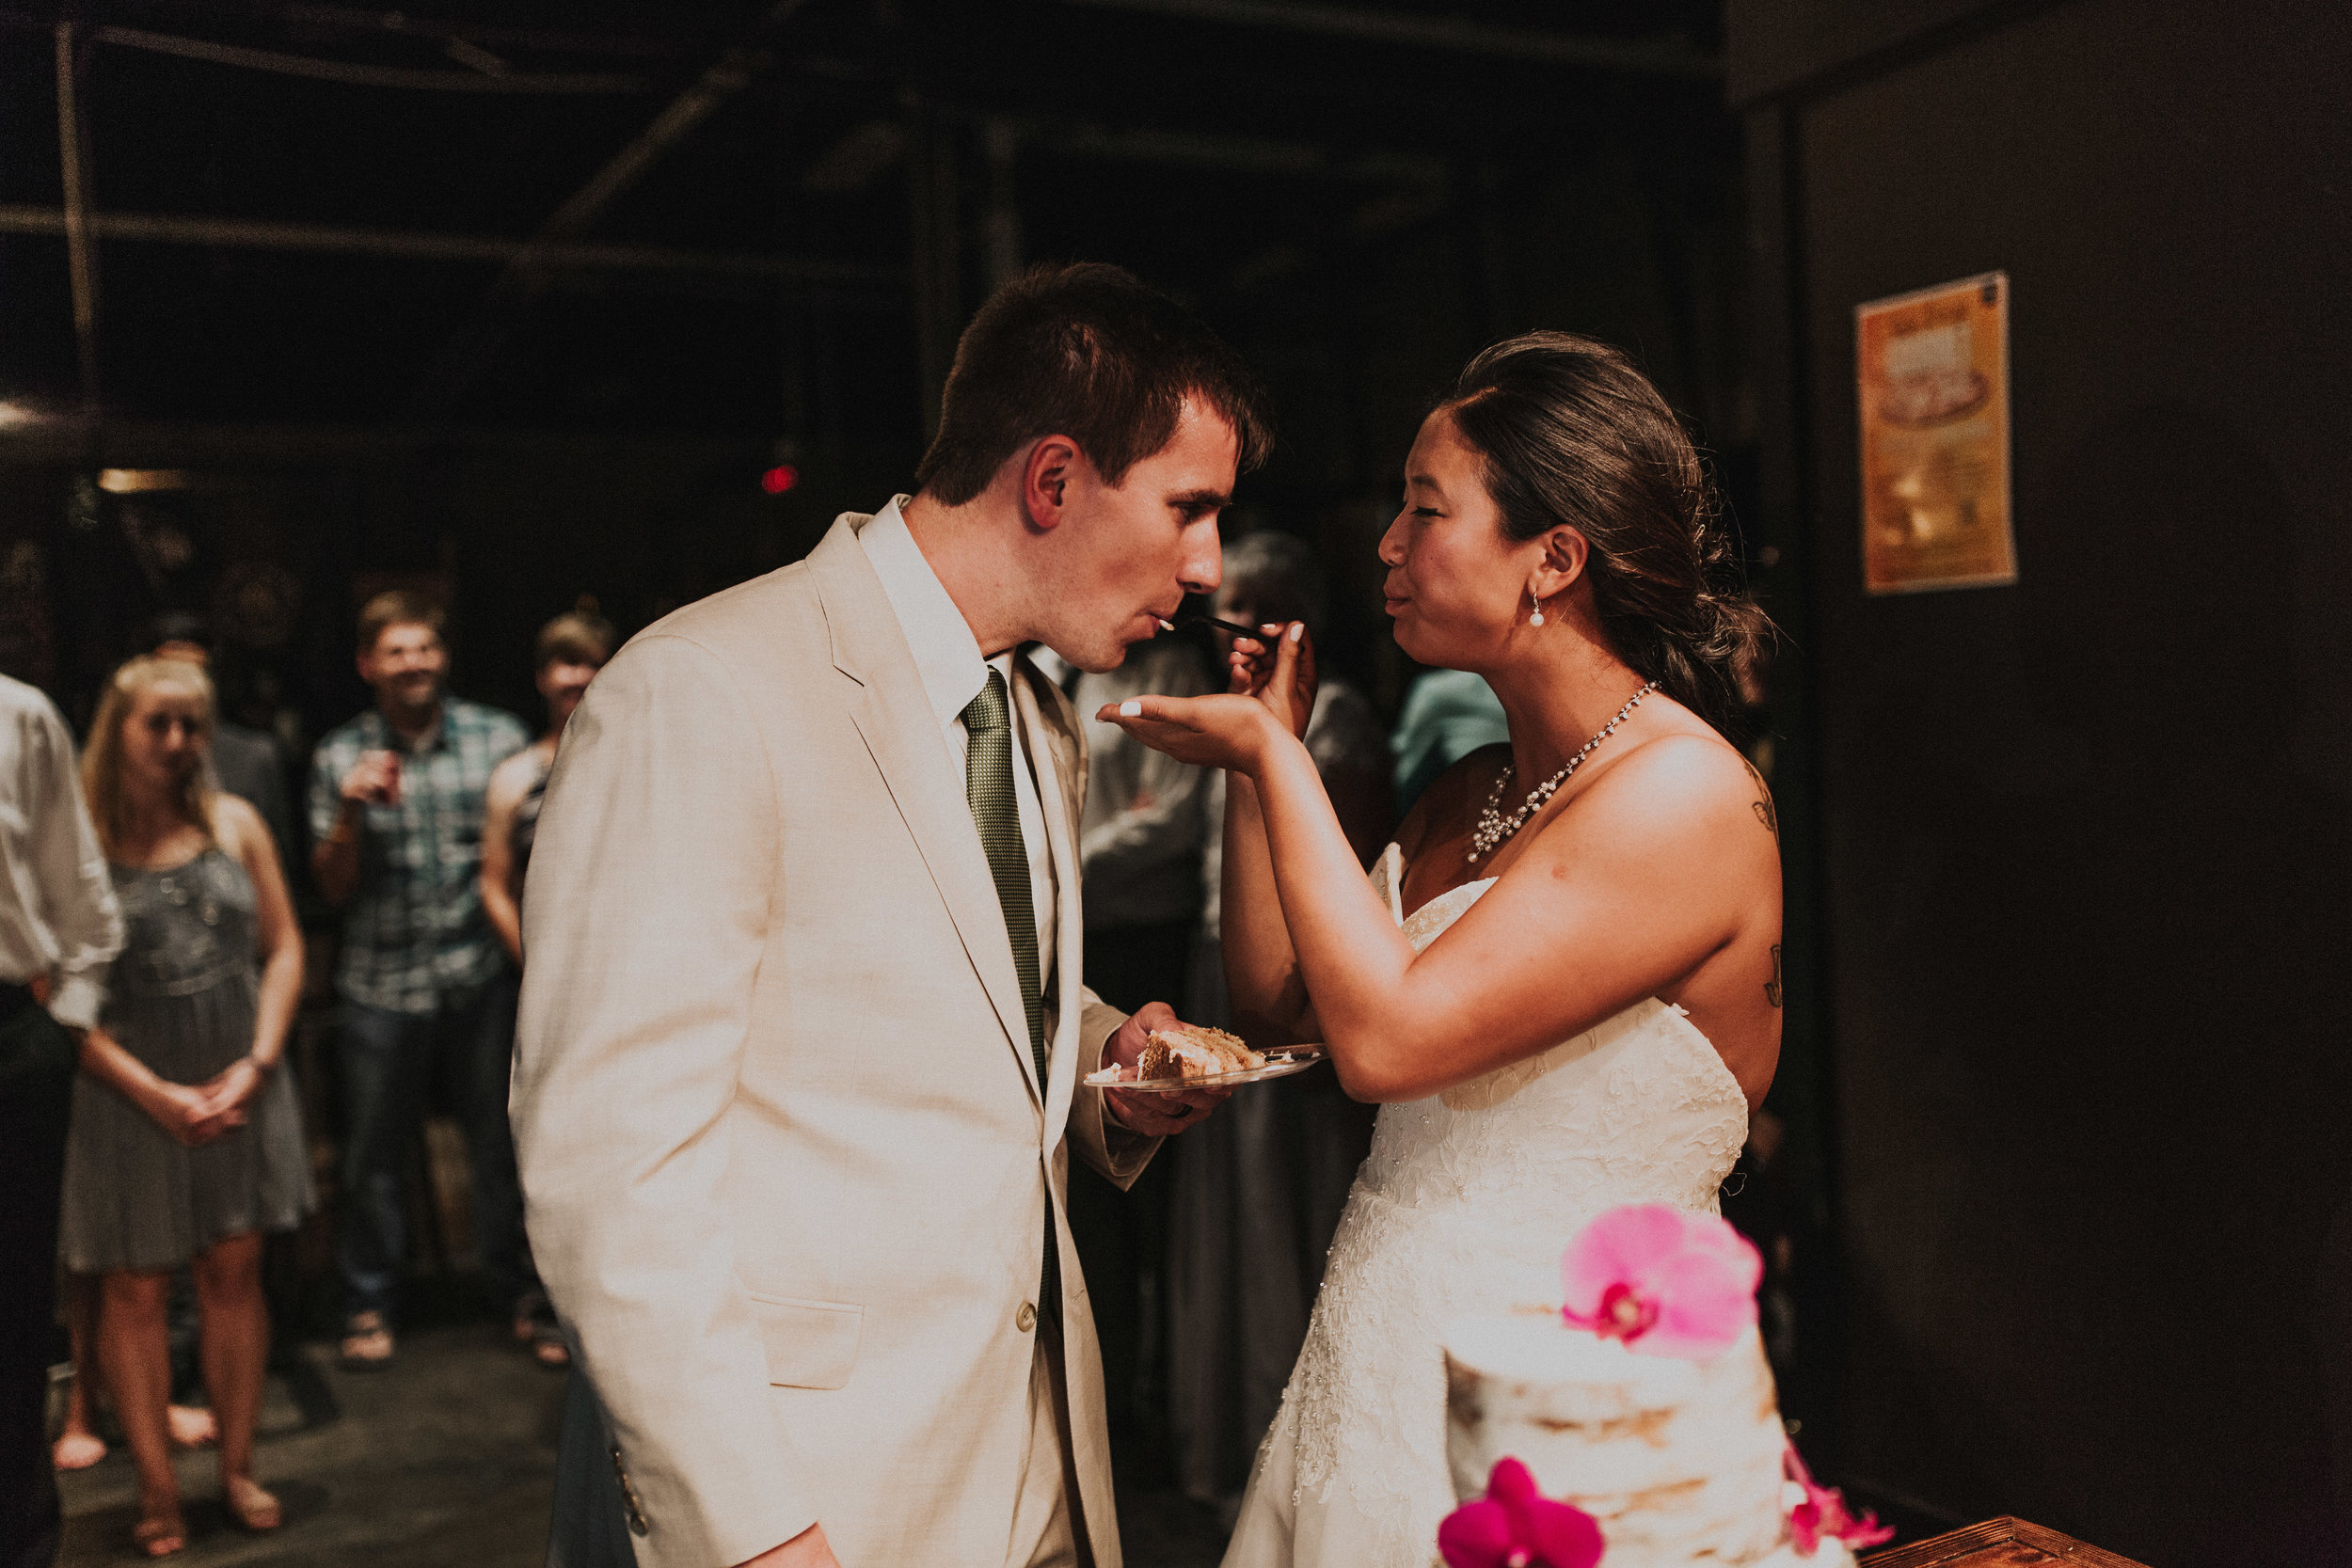 Ching + Michael - Wedding (143 of 150).jpg